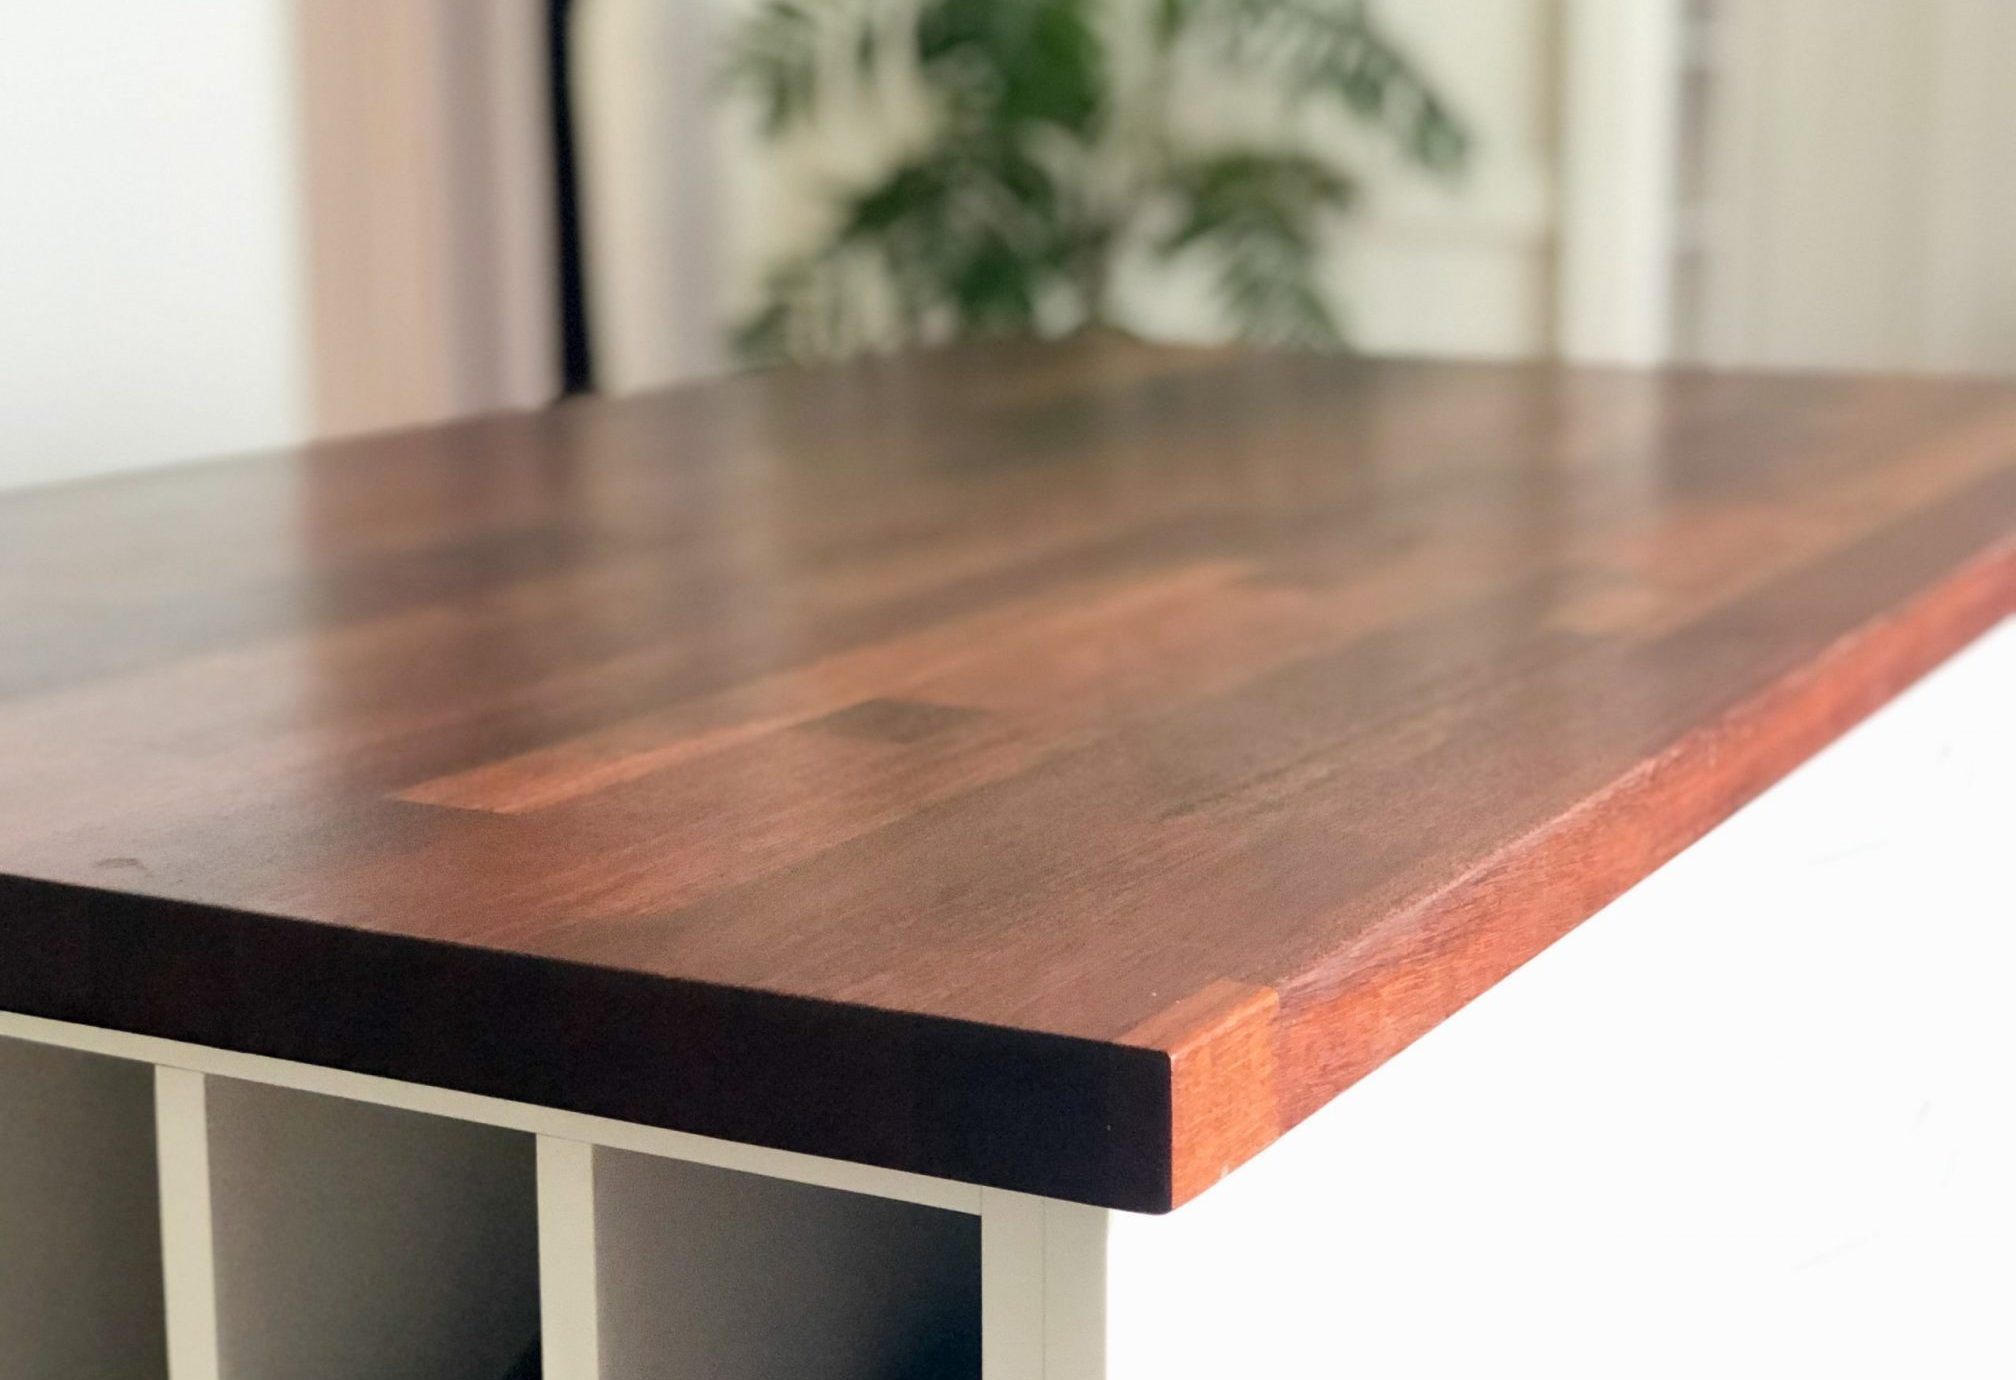 Timber kitchen benches